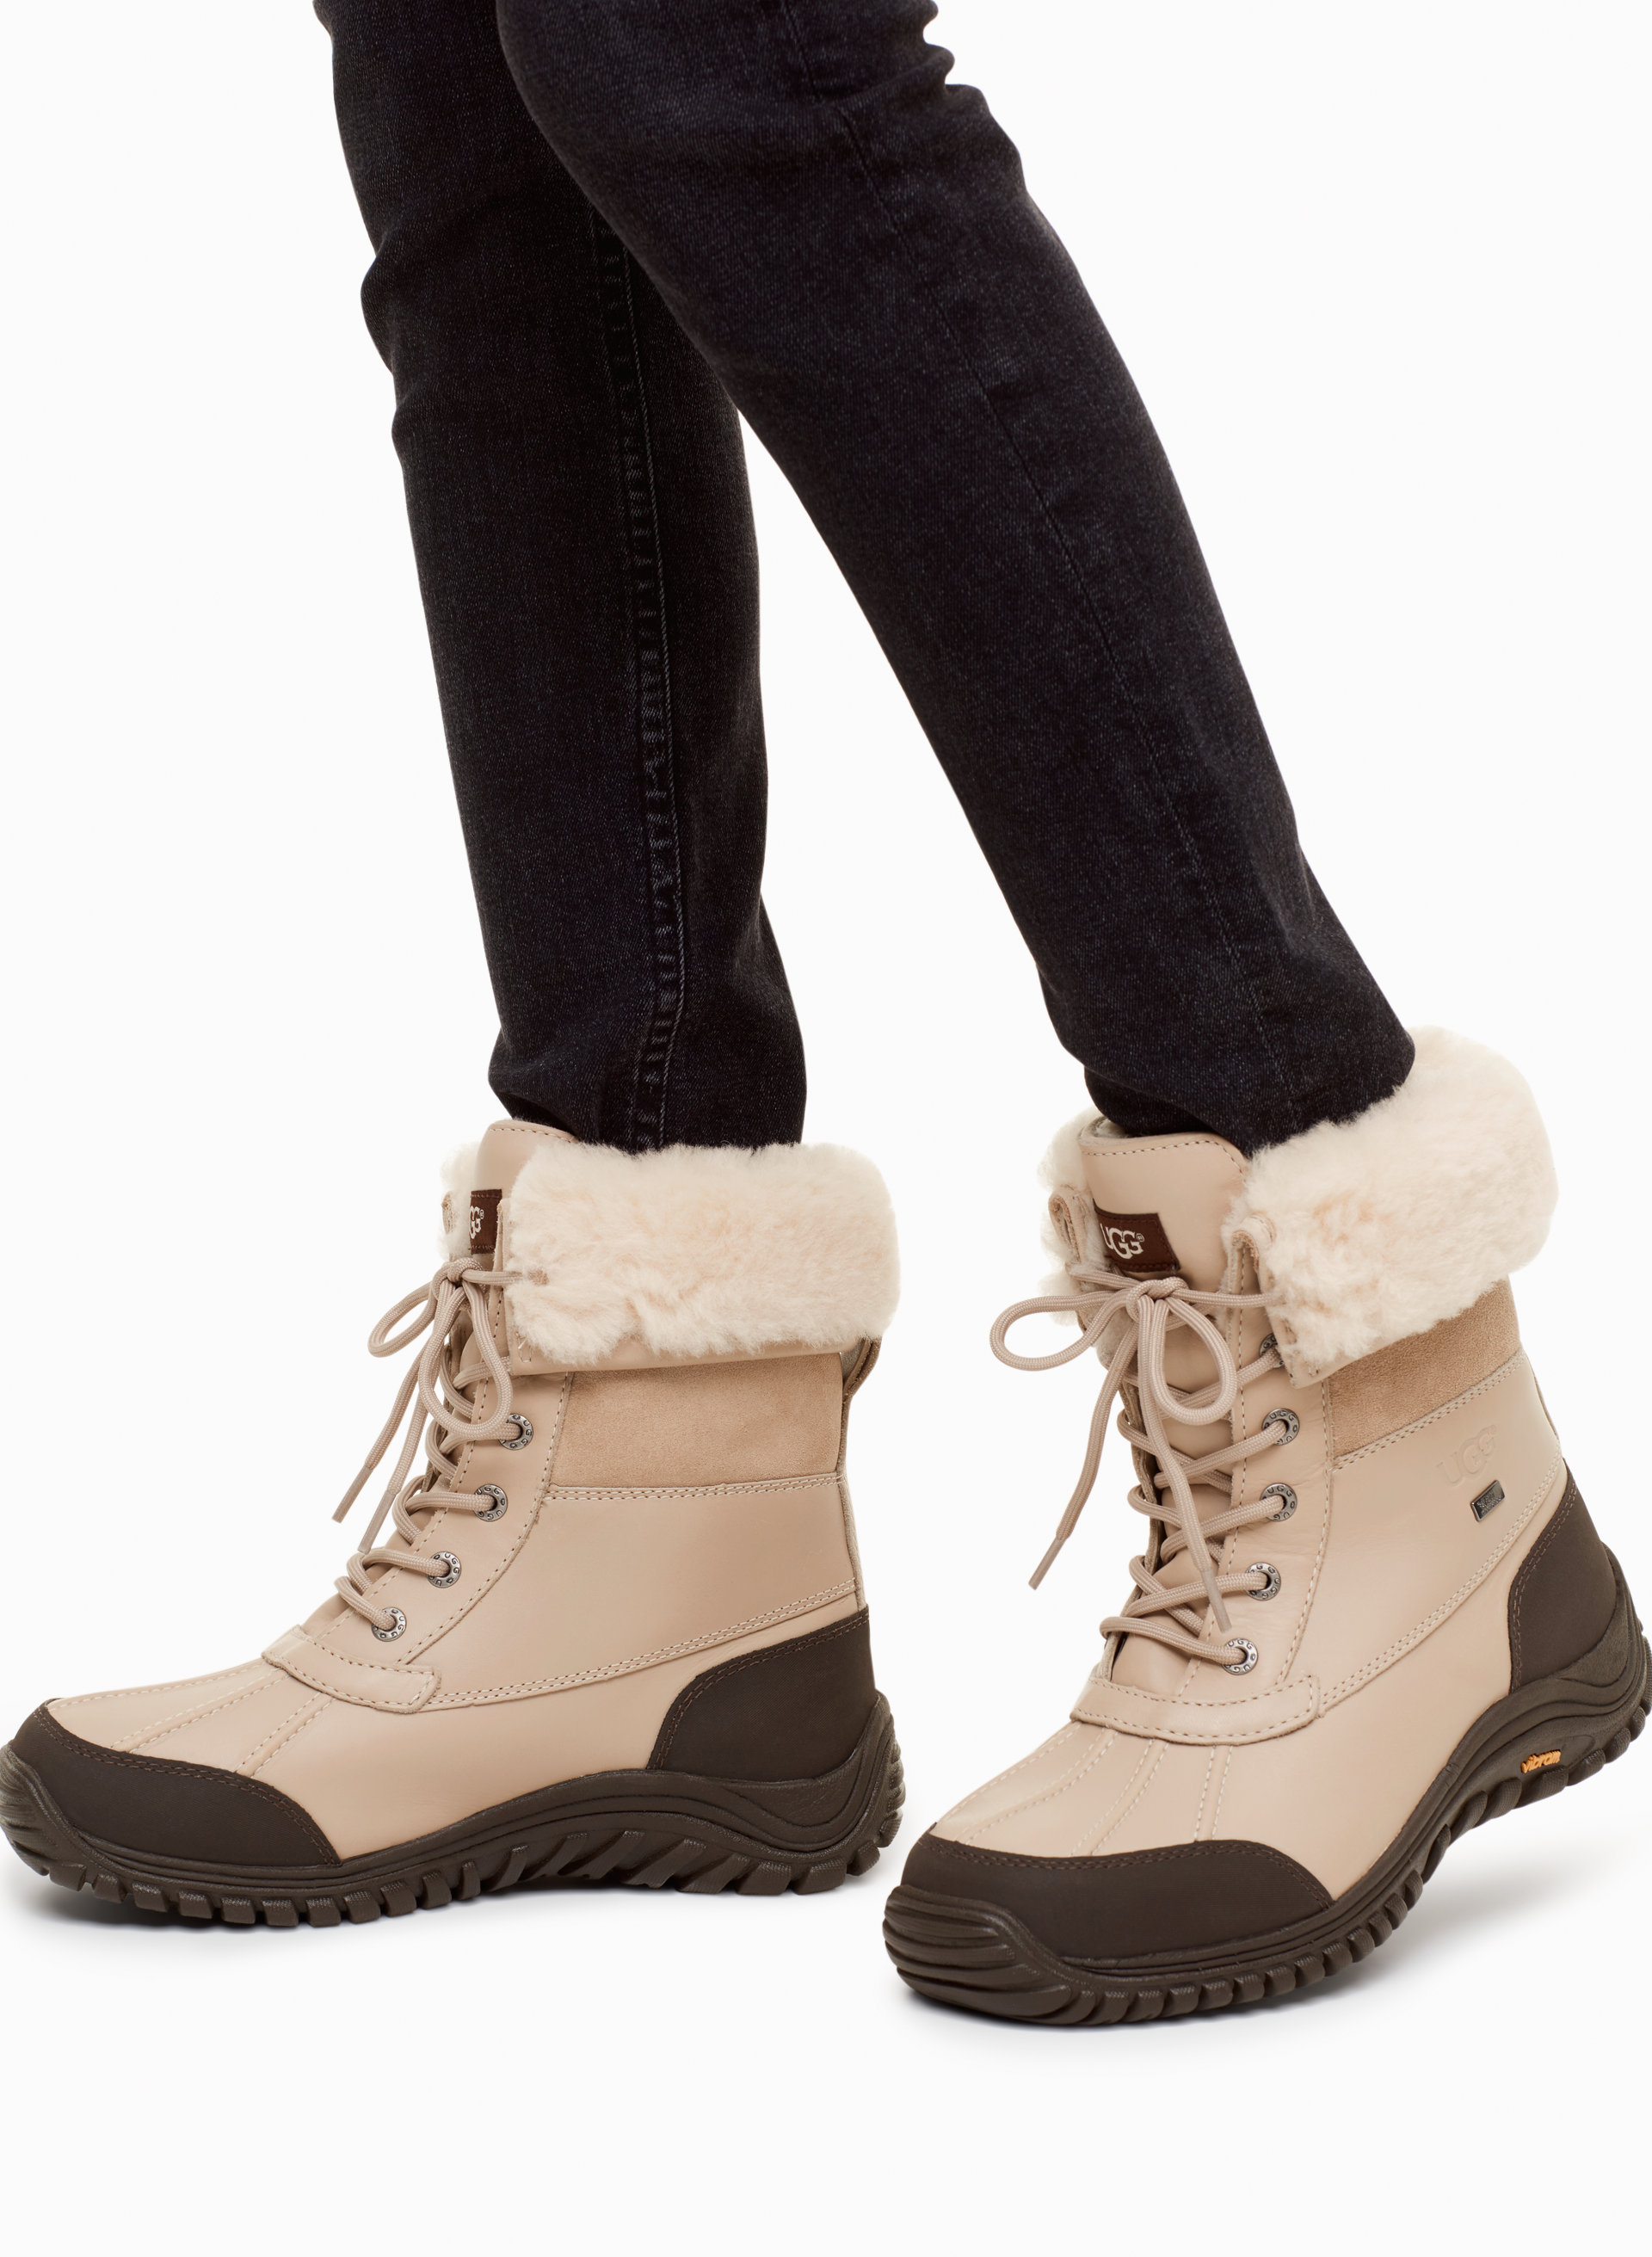 31cd419f4be UGG Australia ADIRONDACK BOOT | Aritzia US